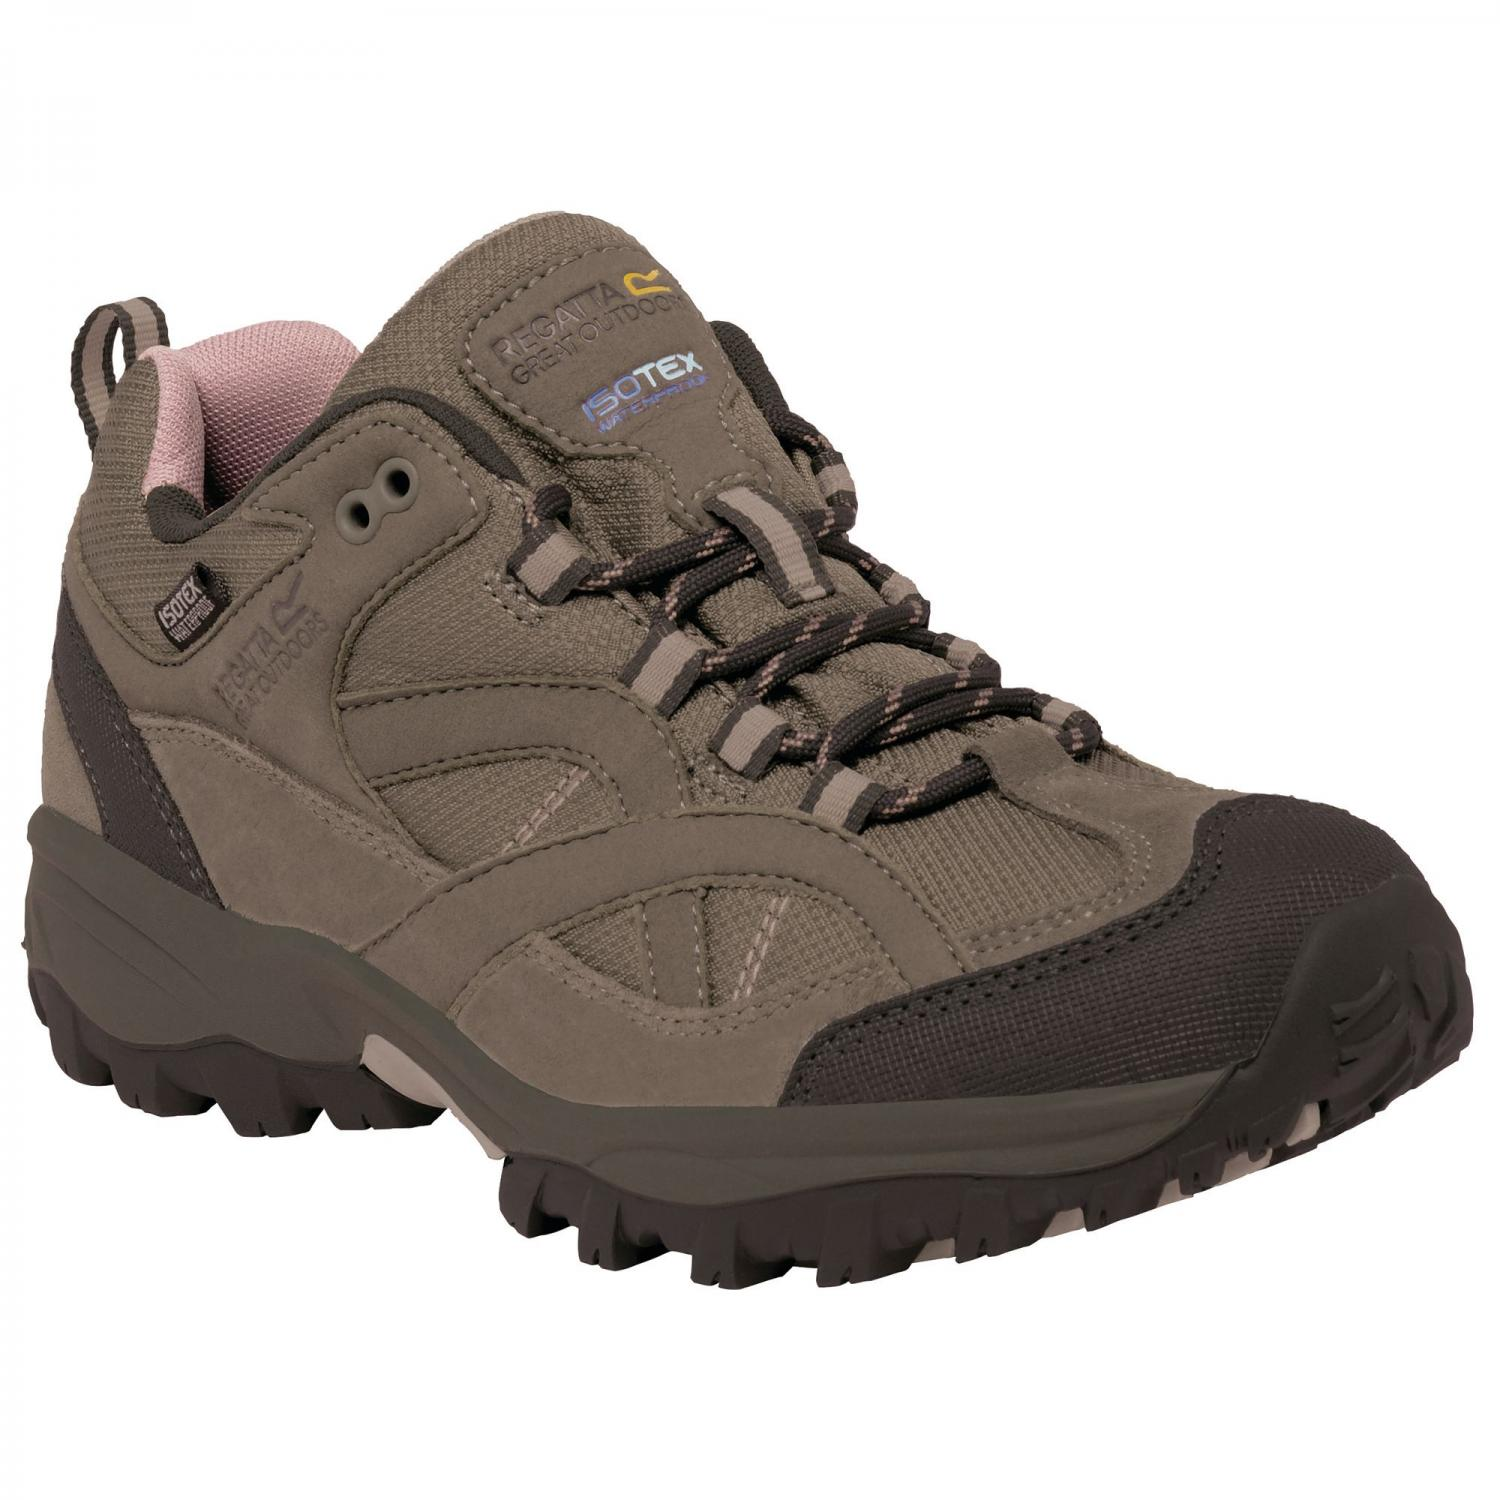 Lady Alderson Low Walking Shoe Walnt DuskyR